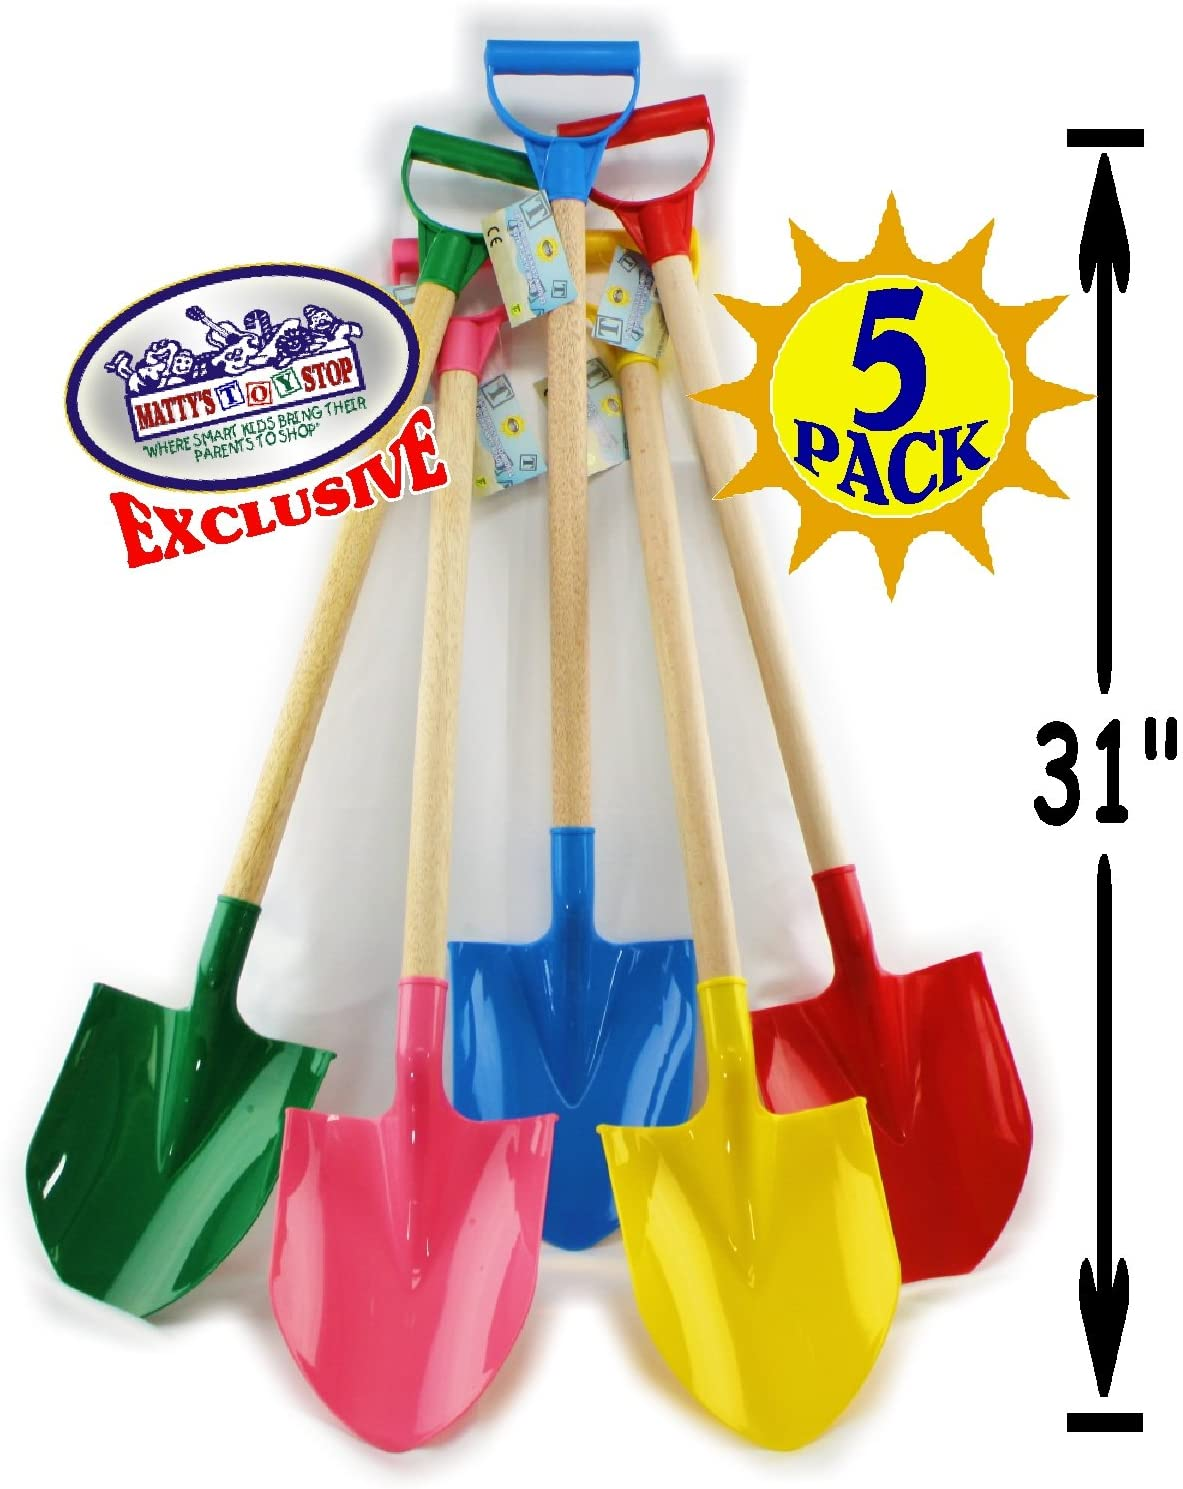 """Matty's Toy Stop 31"""" Heavy Duty Wooden Kids Sand Shovels with Plastic Spade & Handle (Red, Blue, Green, Yellow & Pink) Complete Gift Set Bundle - 5 Pack"""